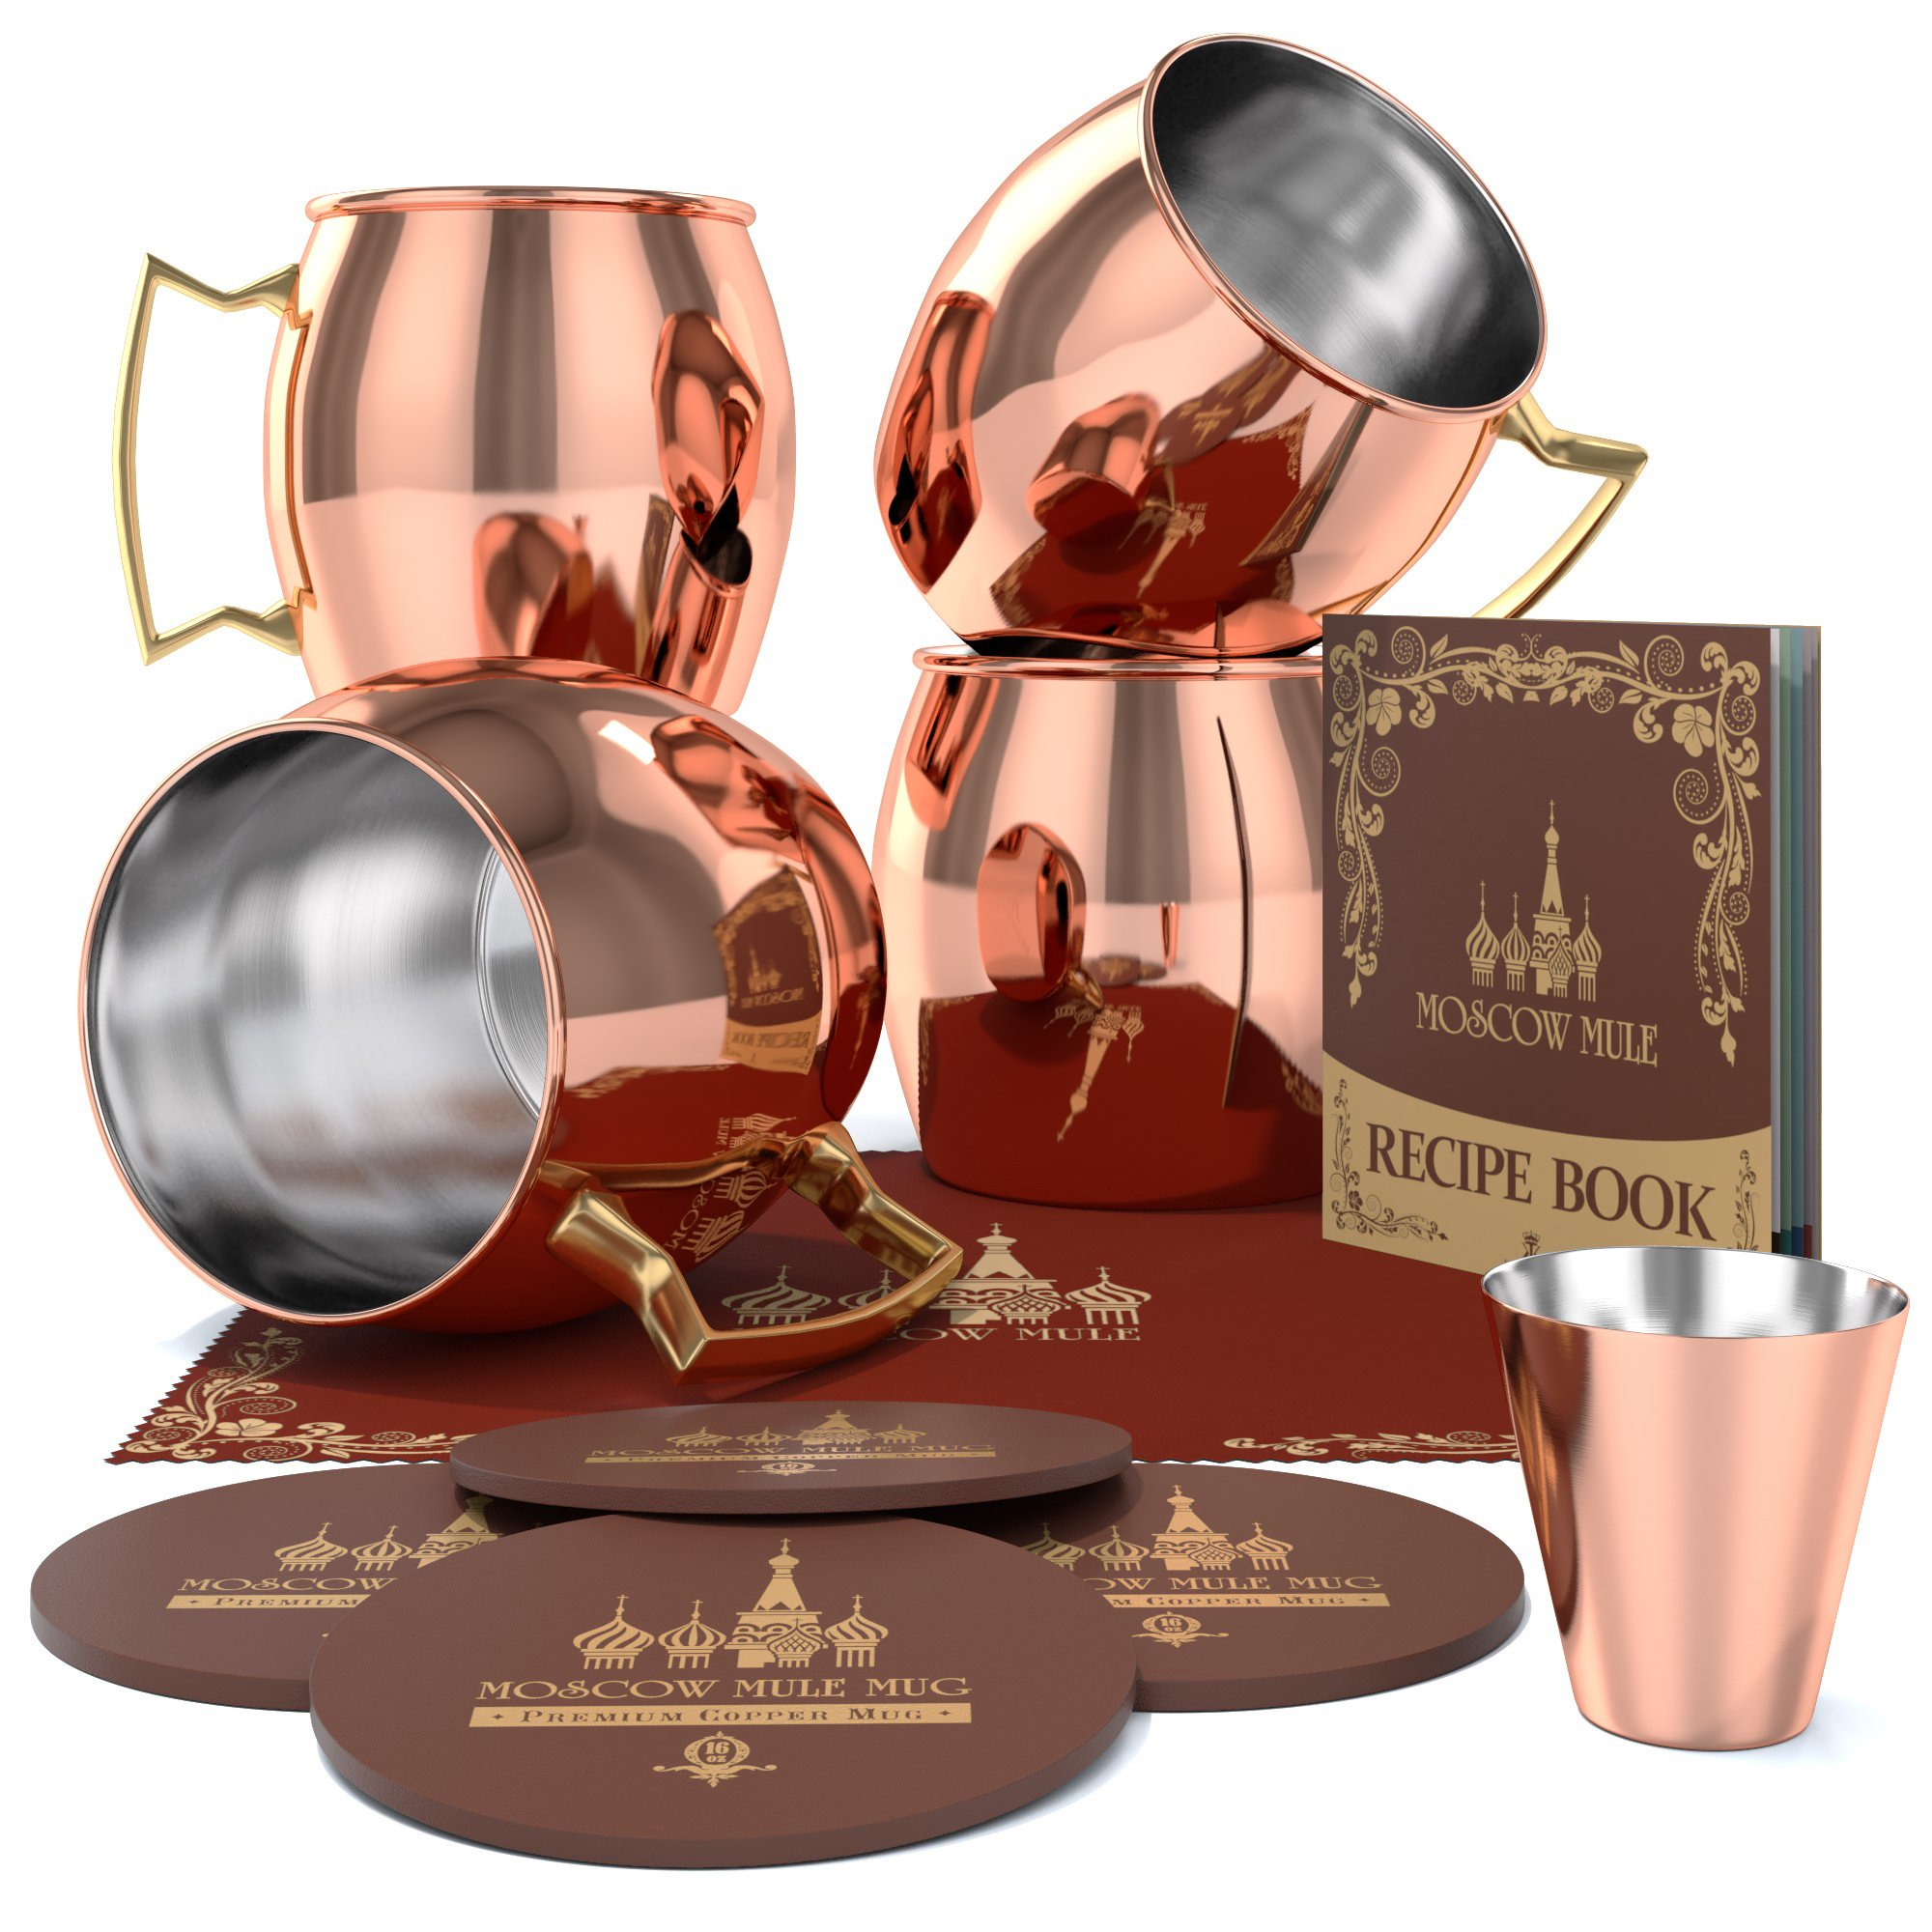 Krown Kitchen - Moscow Mule Copper Mug Set of 4   Stainless Steel Lining   16 oz by Krown Kitchen